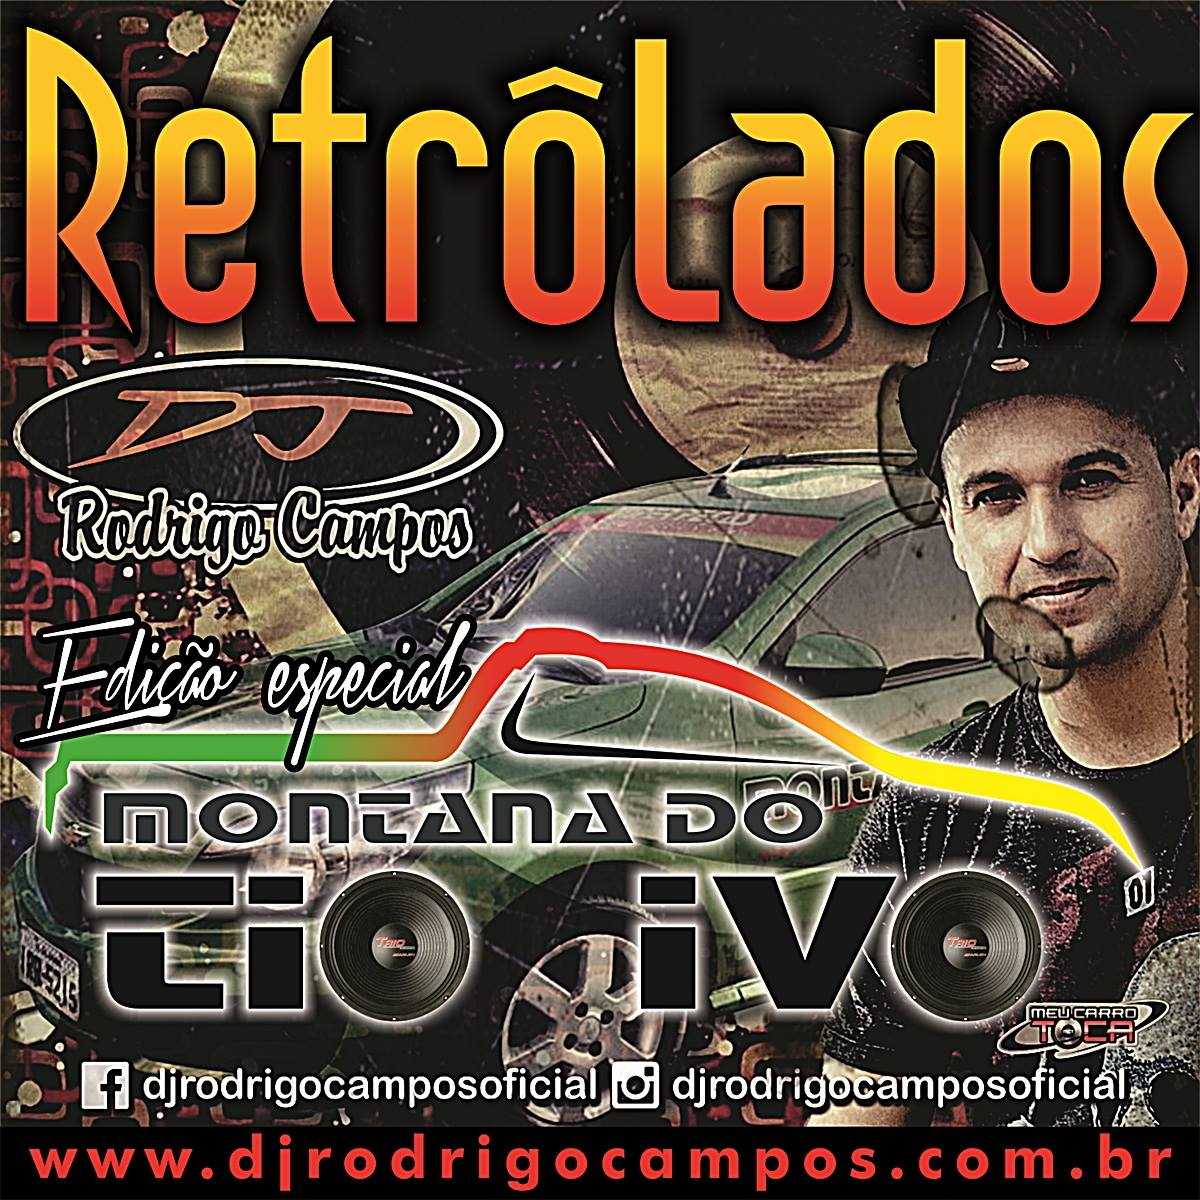 Montana do Tio Ivo ESP Retrolados